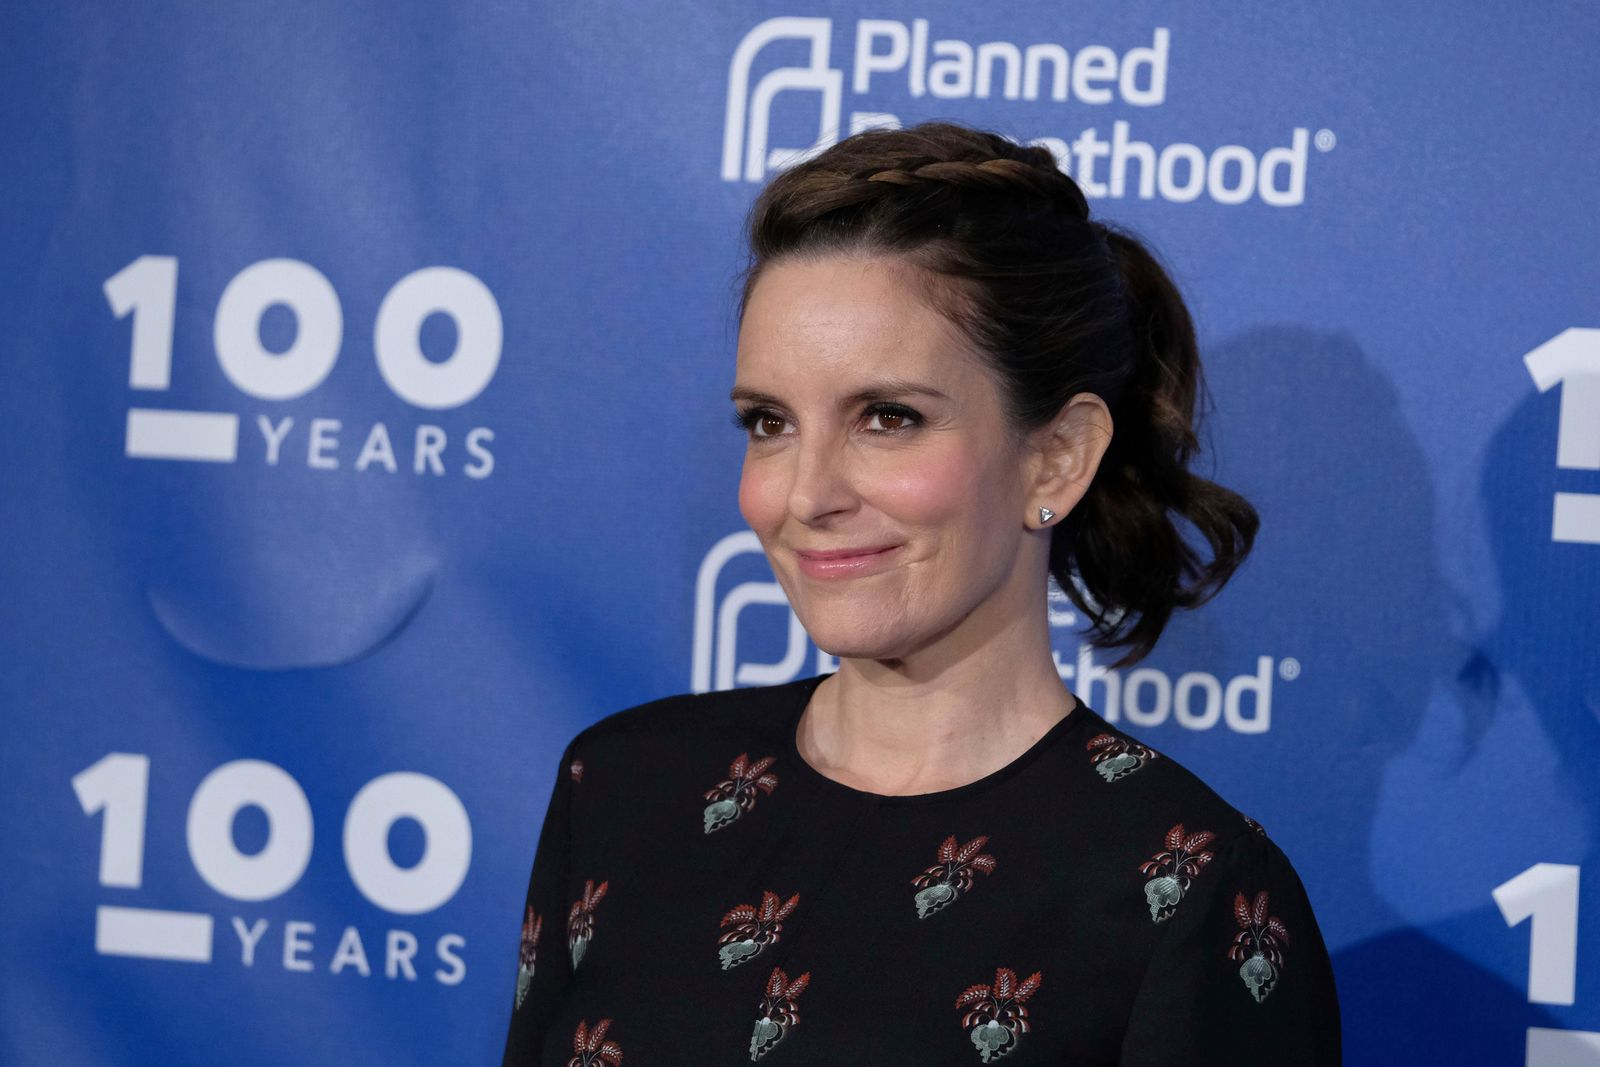 Tina Fey attends the Planned Parenthood 100th Anniversary Gala on Tuesday, May 2, 2017 in New York. (Photo by Charles Sykes/Invision/AP)